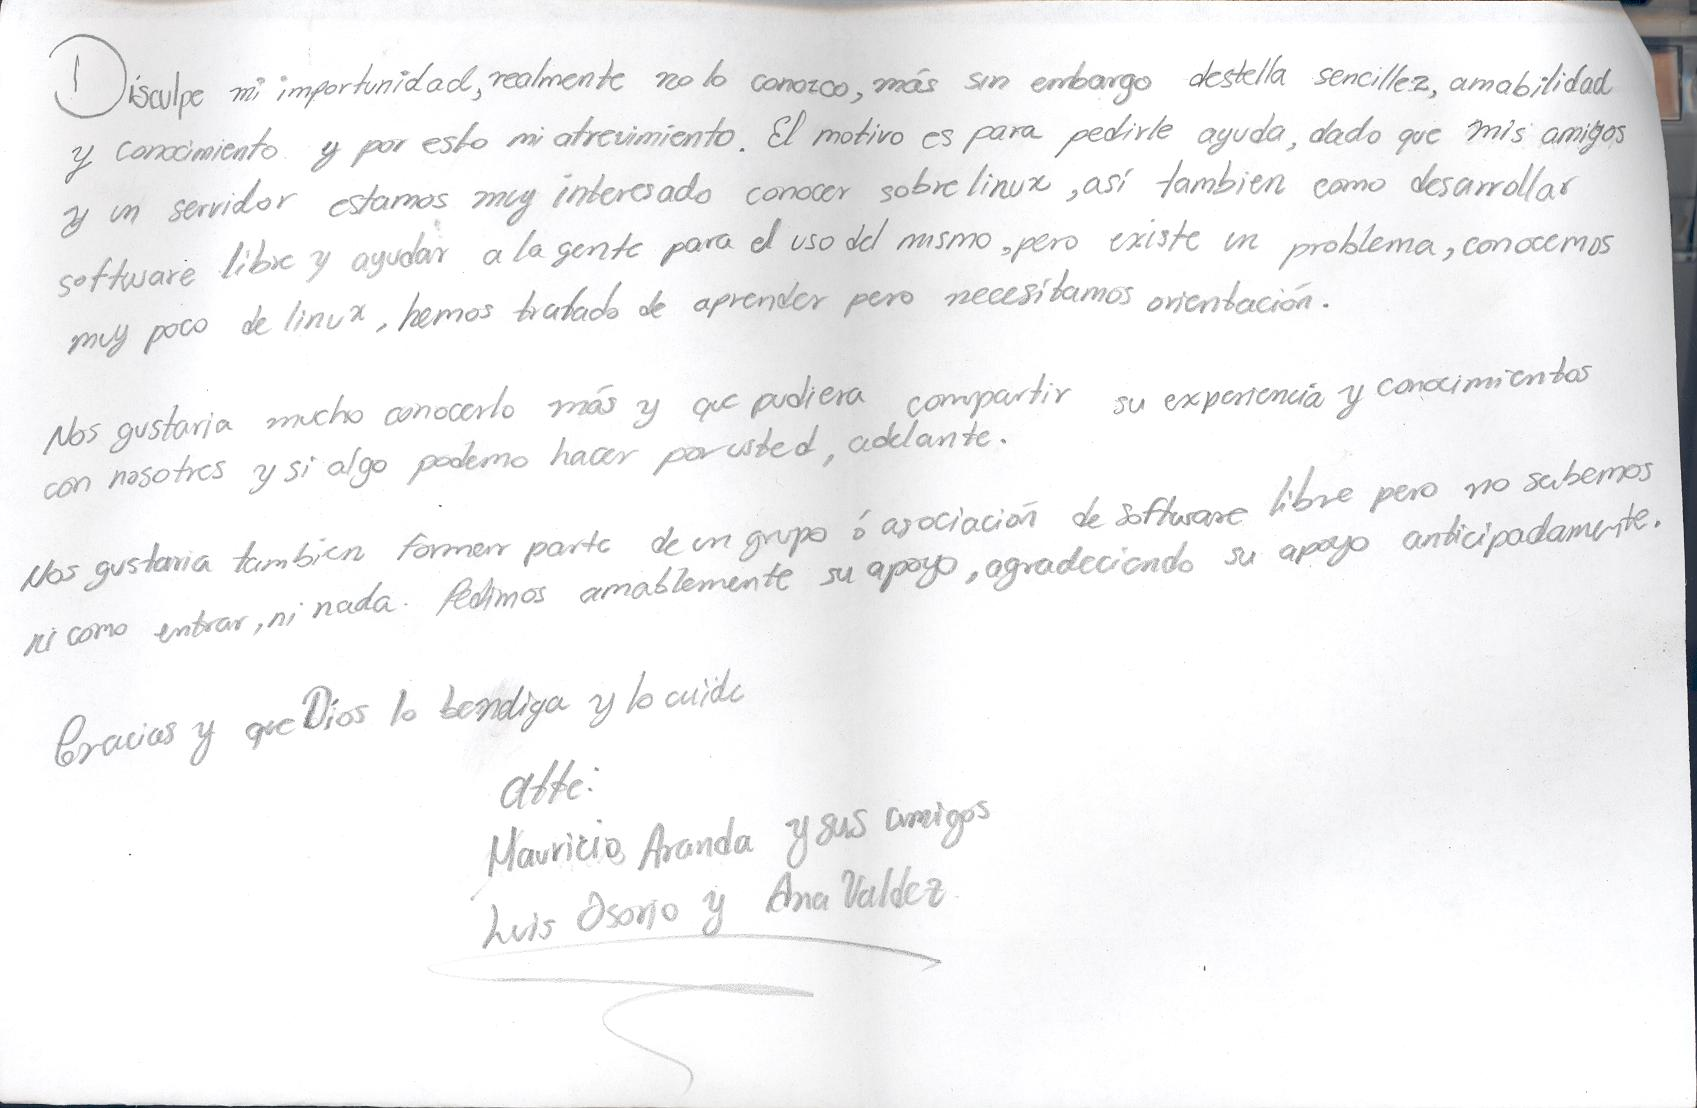 Poza Rica 31/05/05: Letter from a group of students